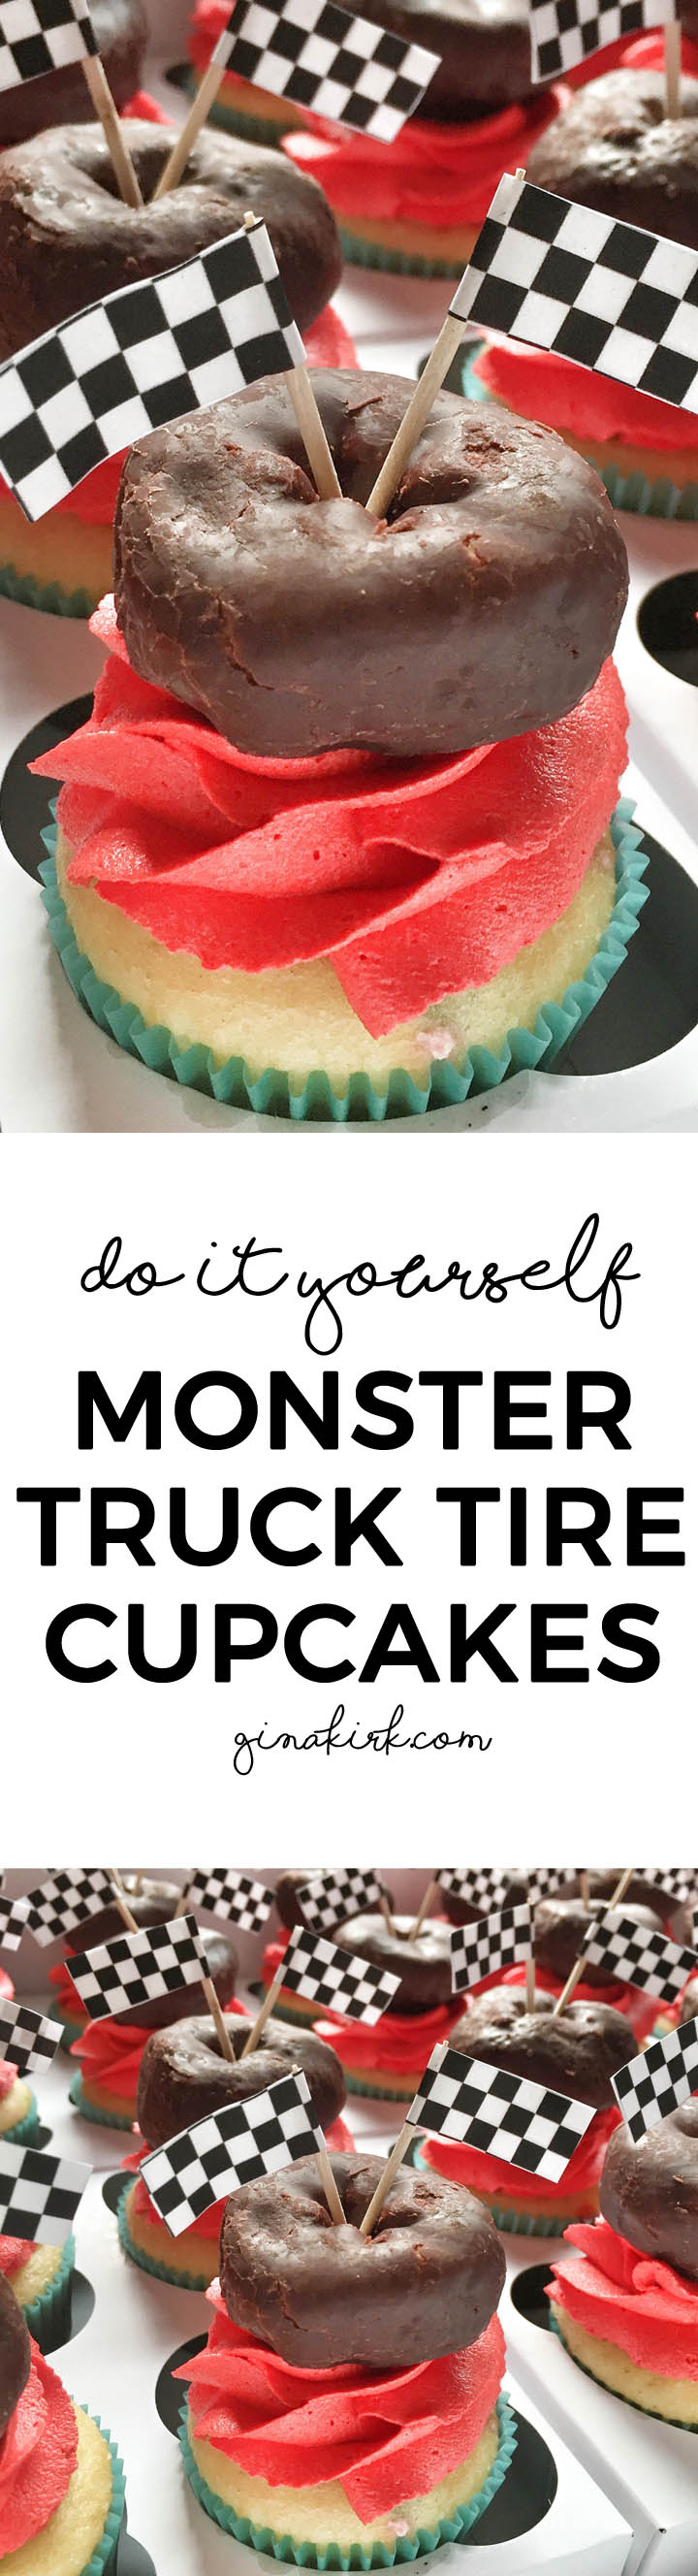 DIY monster truck tire cupcakes, for an easy DIY birthday party for kids! momlifemusthaves.com